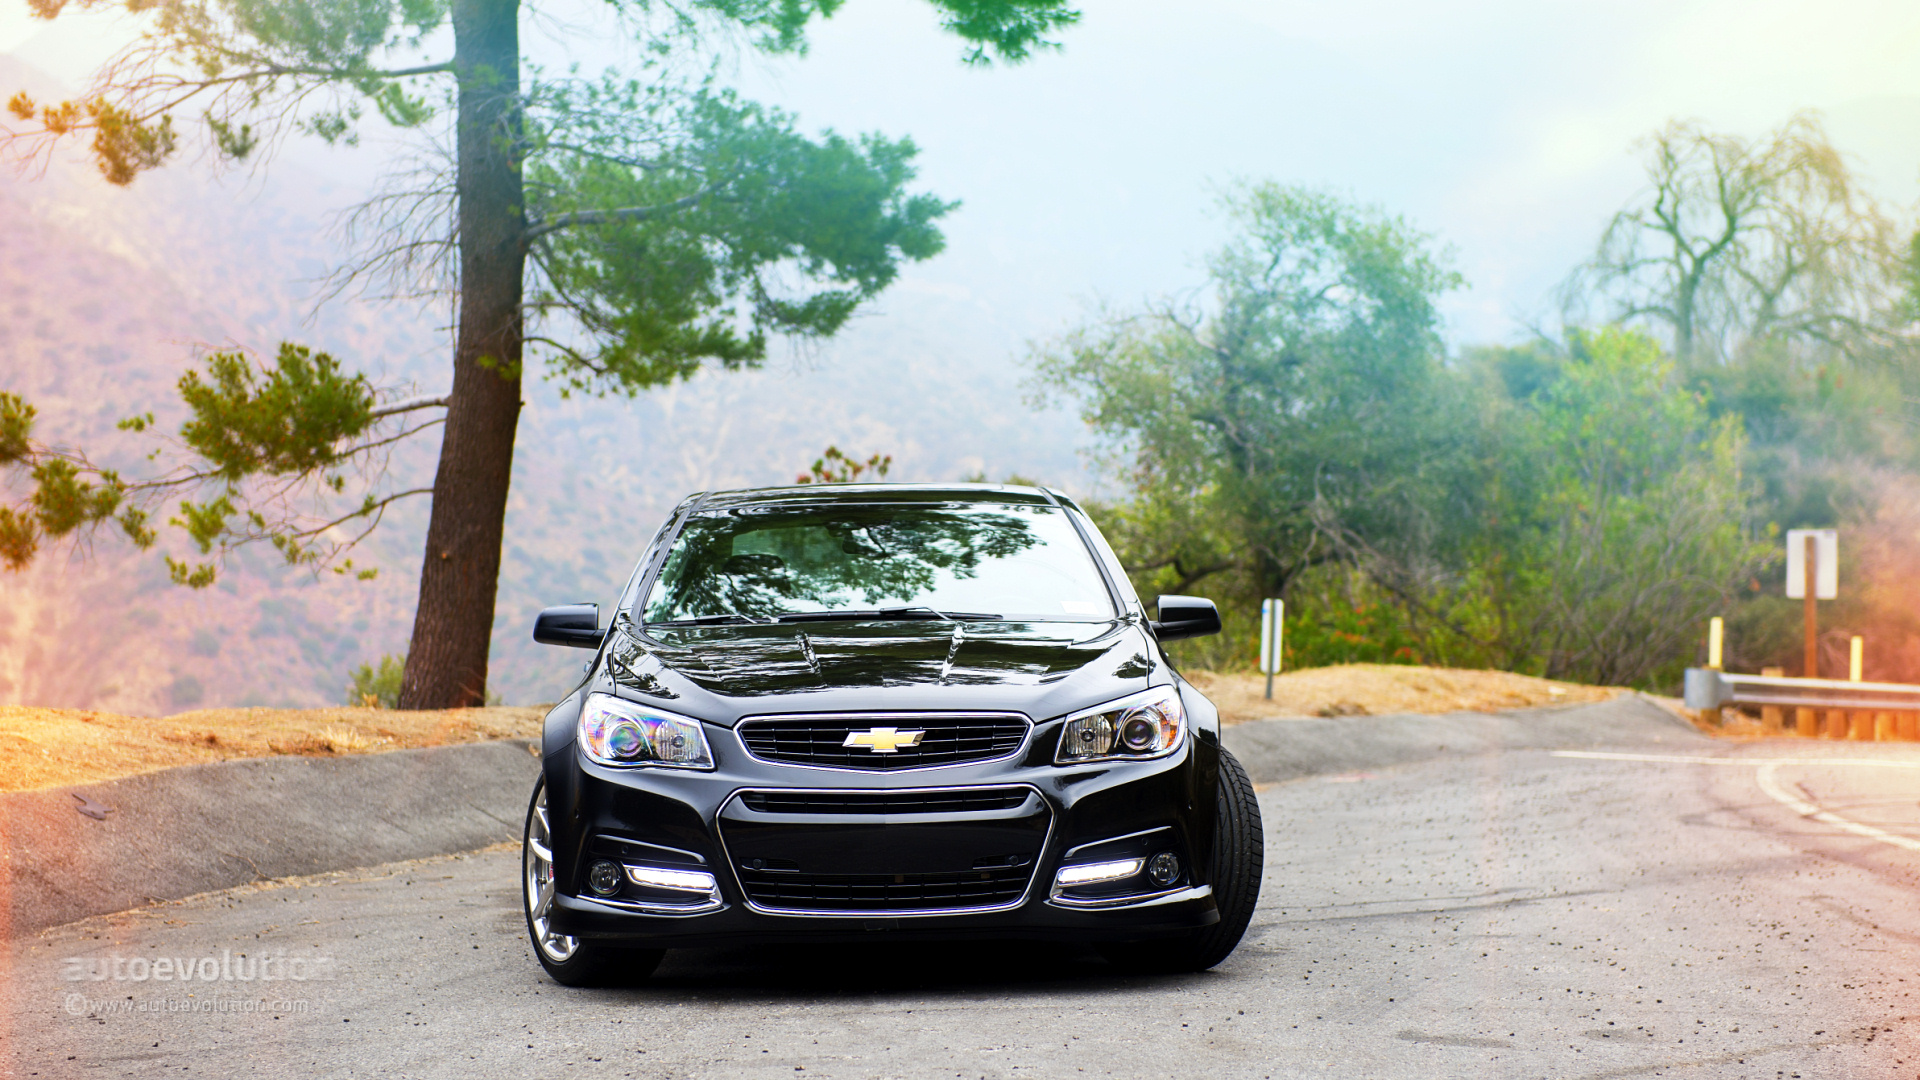 Chevy Blackout Truck >> Chevrolet SS HD Wallpapers - autoevolution